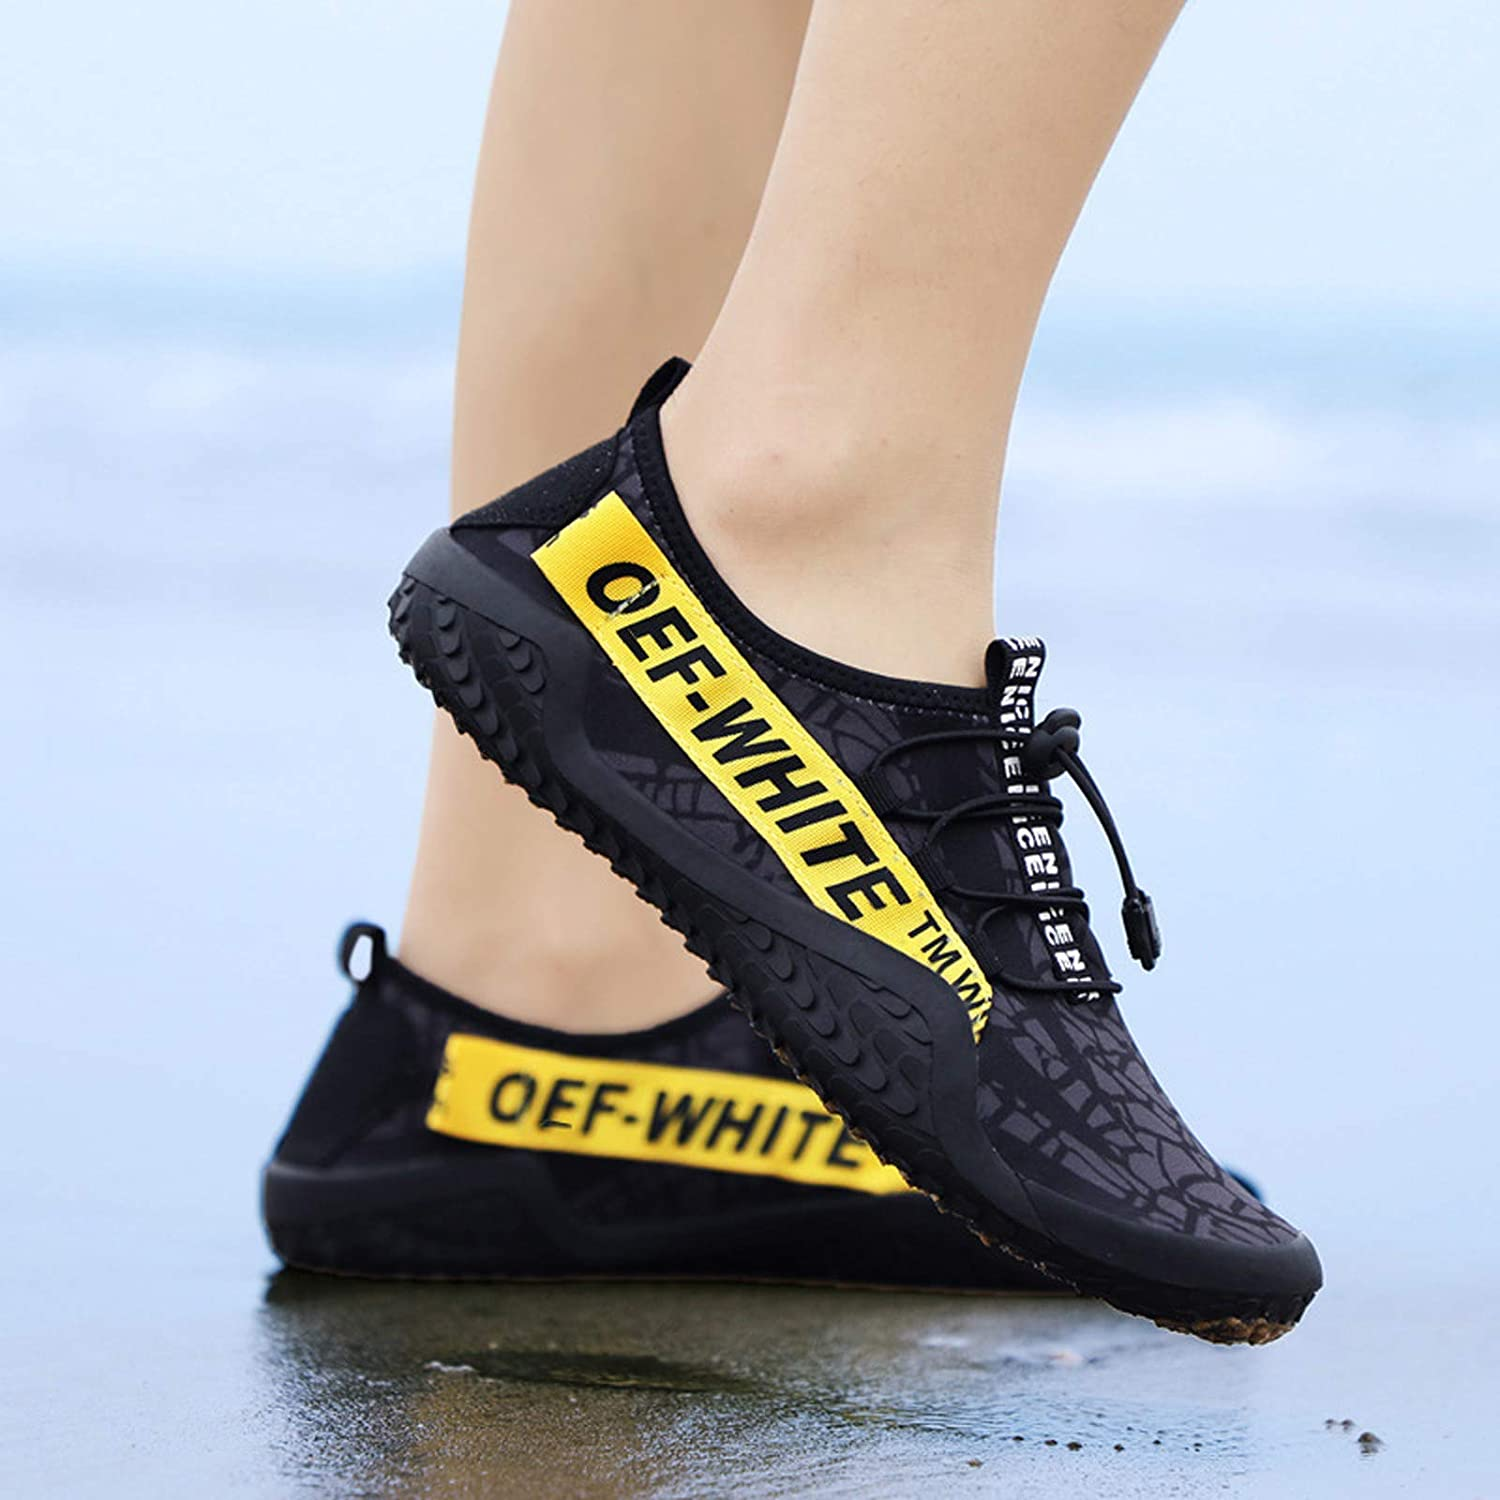 LFDD Pair of Beach Shoes Wading Water Flowing Shoes Yoga Fitness Shoes Skin-Tight Shoes Diving Swimming Shoes,Yellow,45